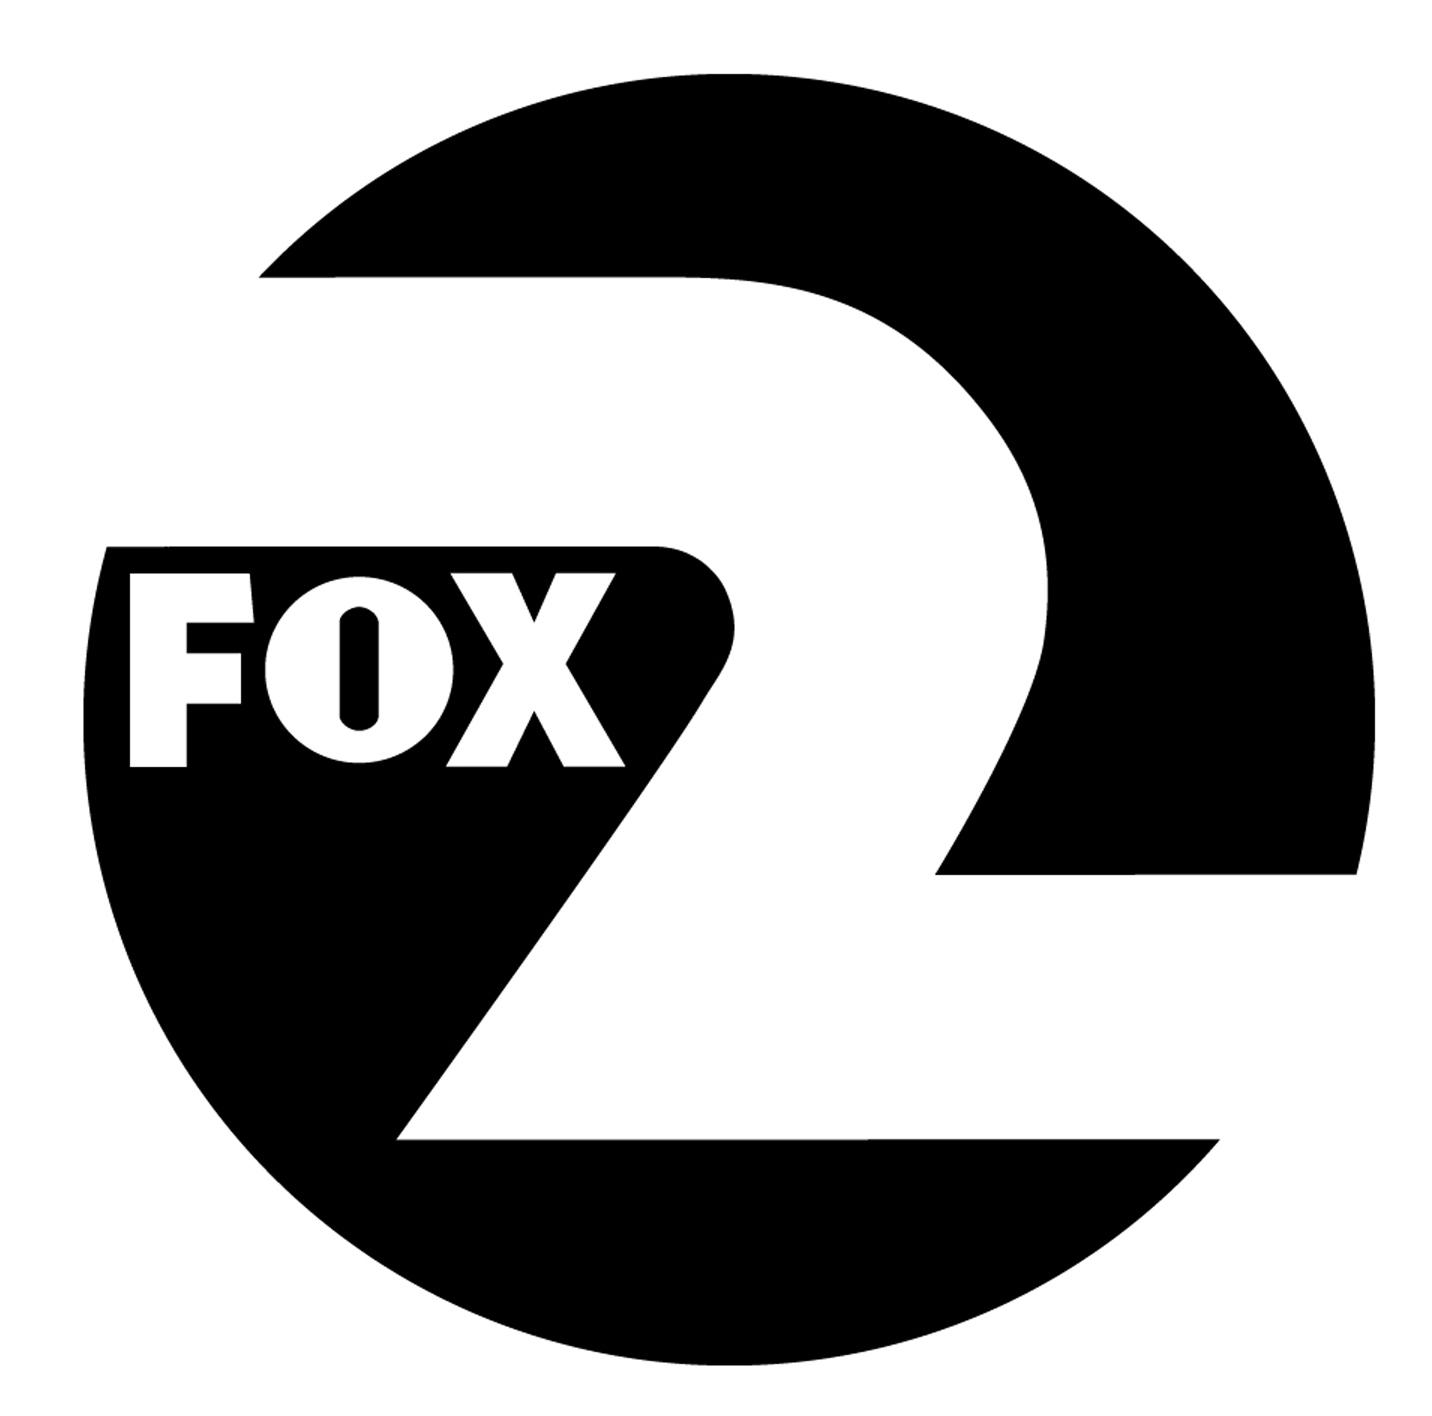 Fox 2 News San Francisco Live Stream - Channel 2 KTVU TV